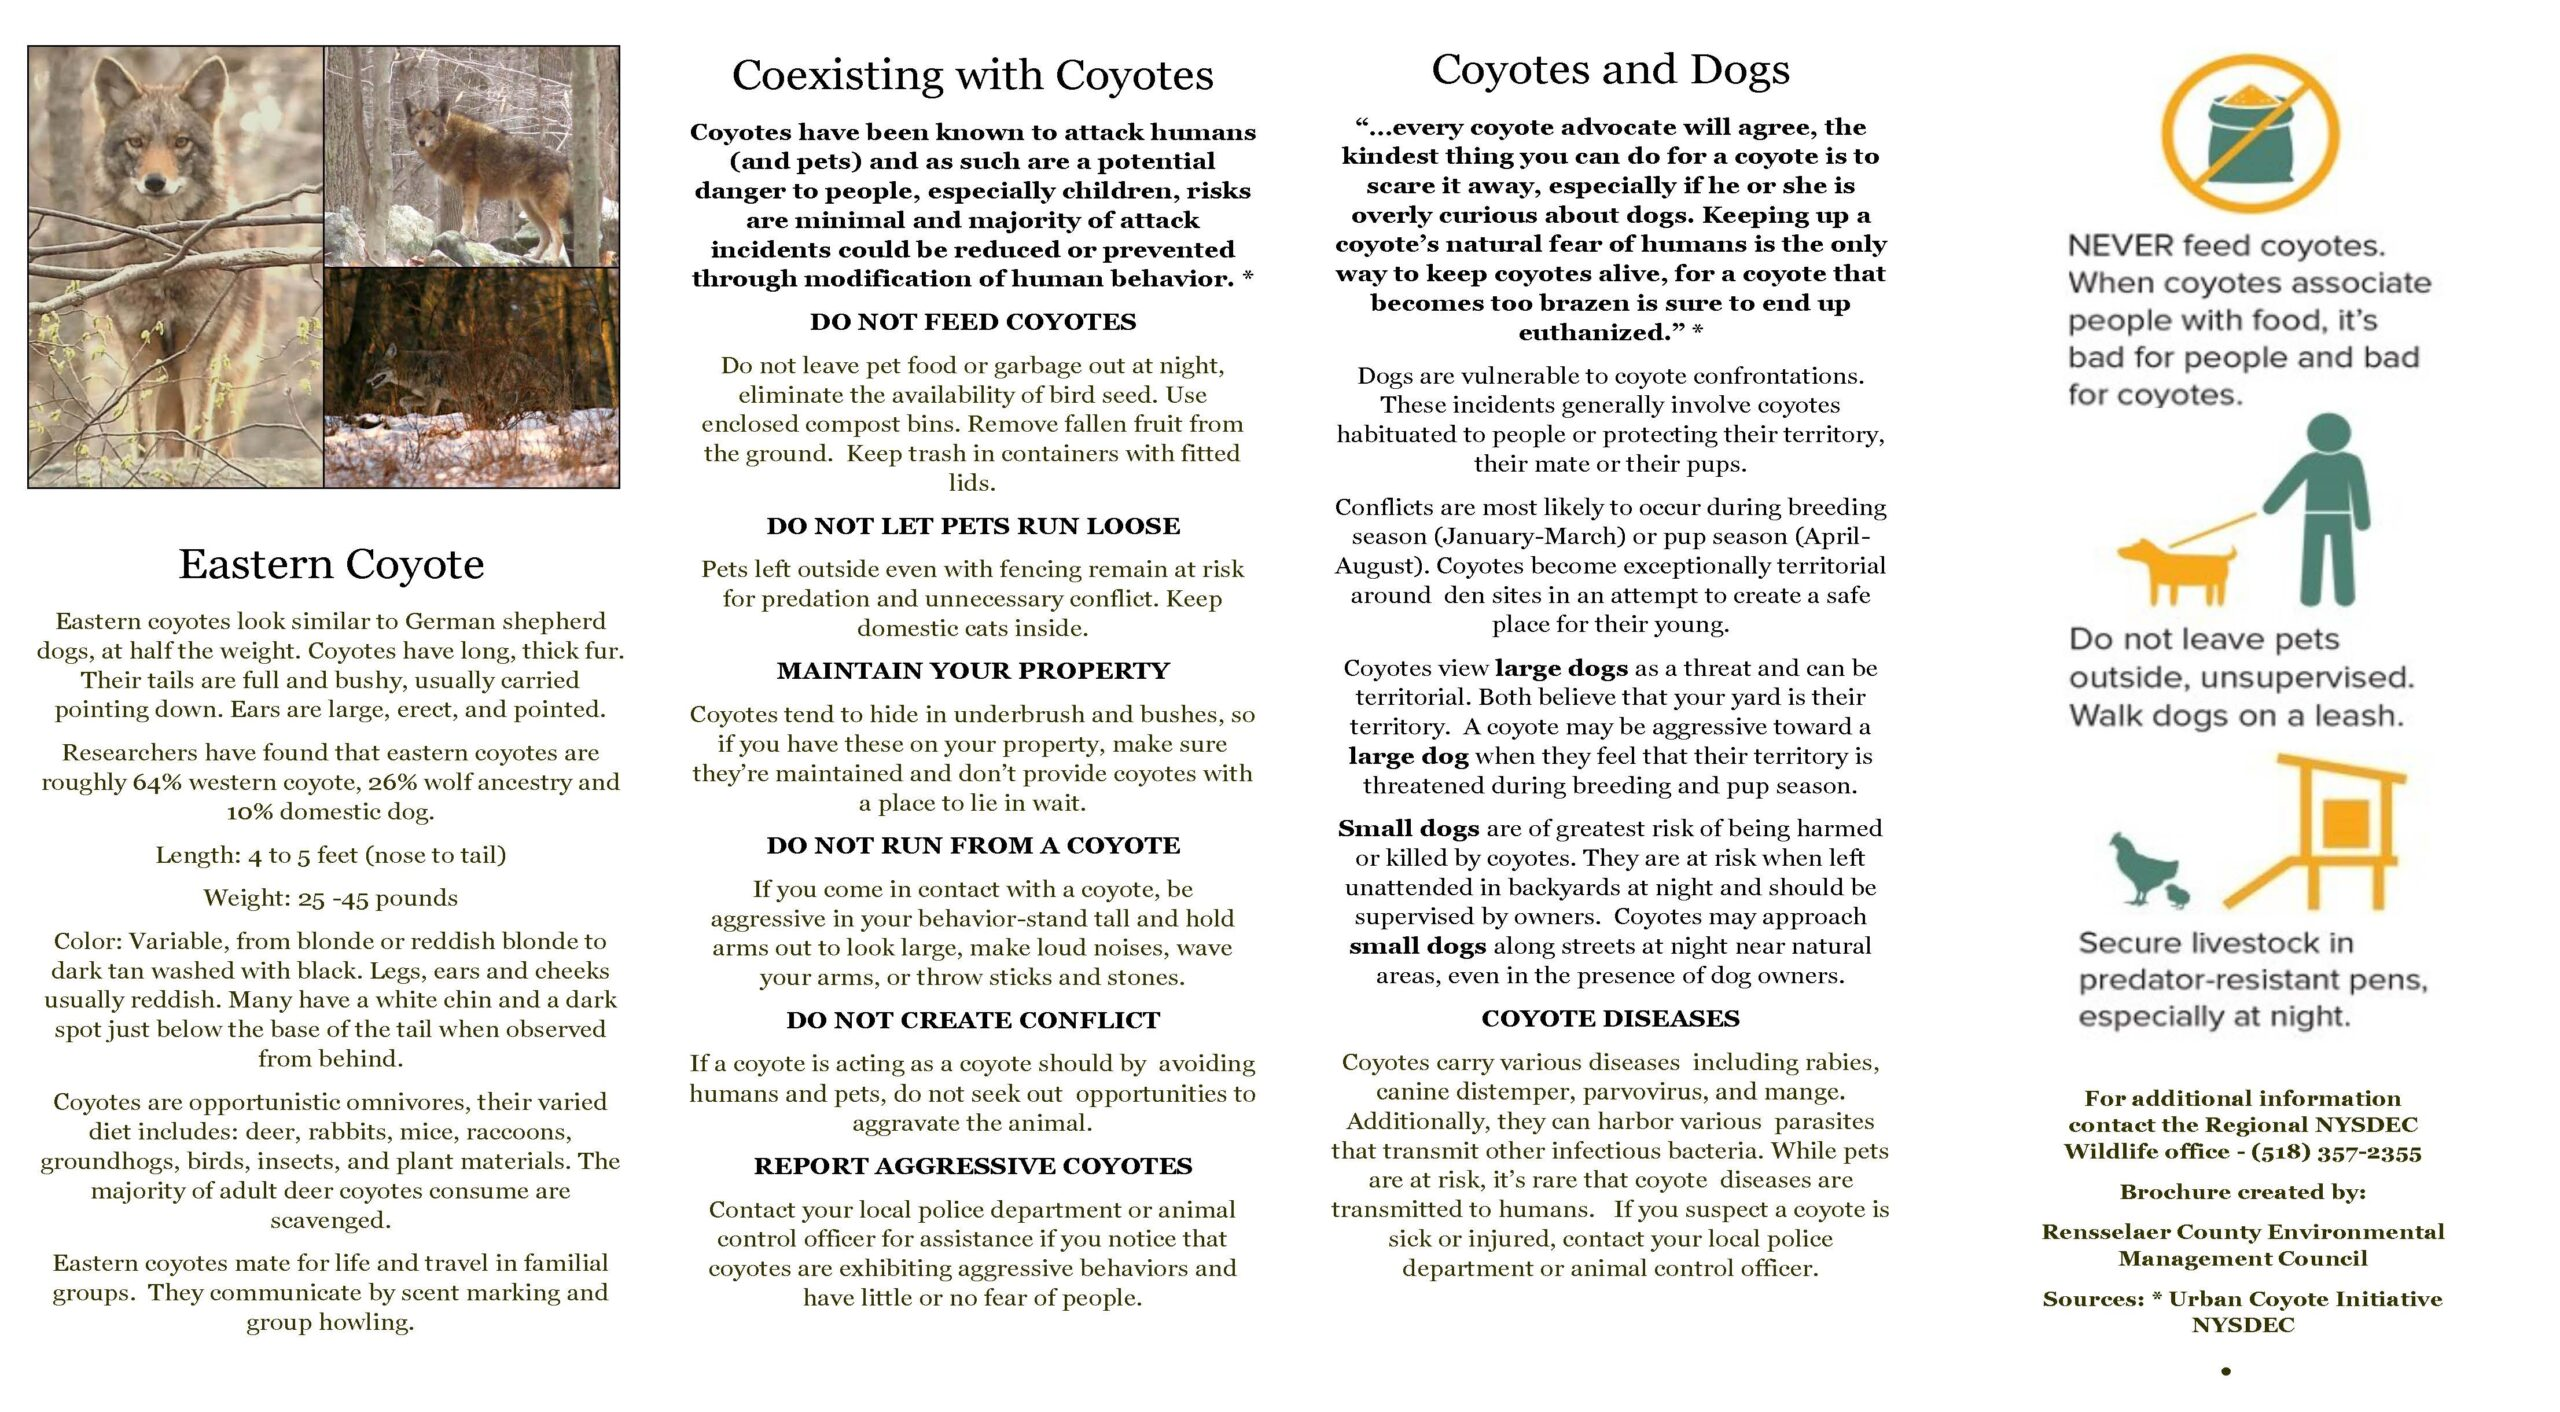 Coexisting with Coyotes